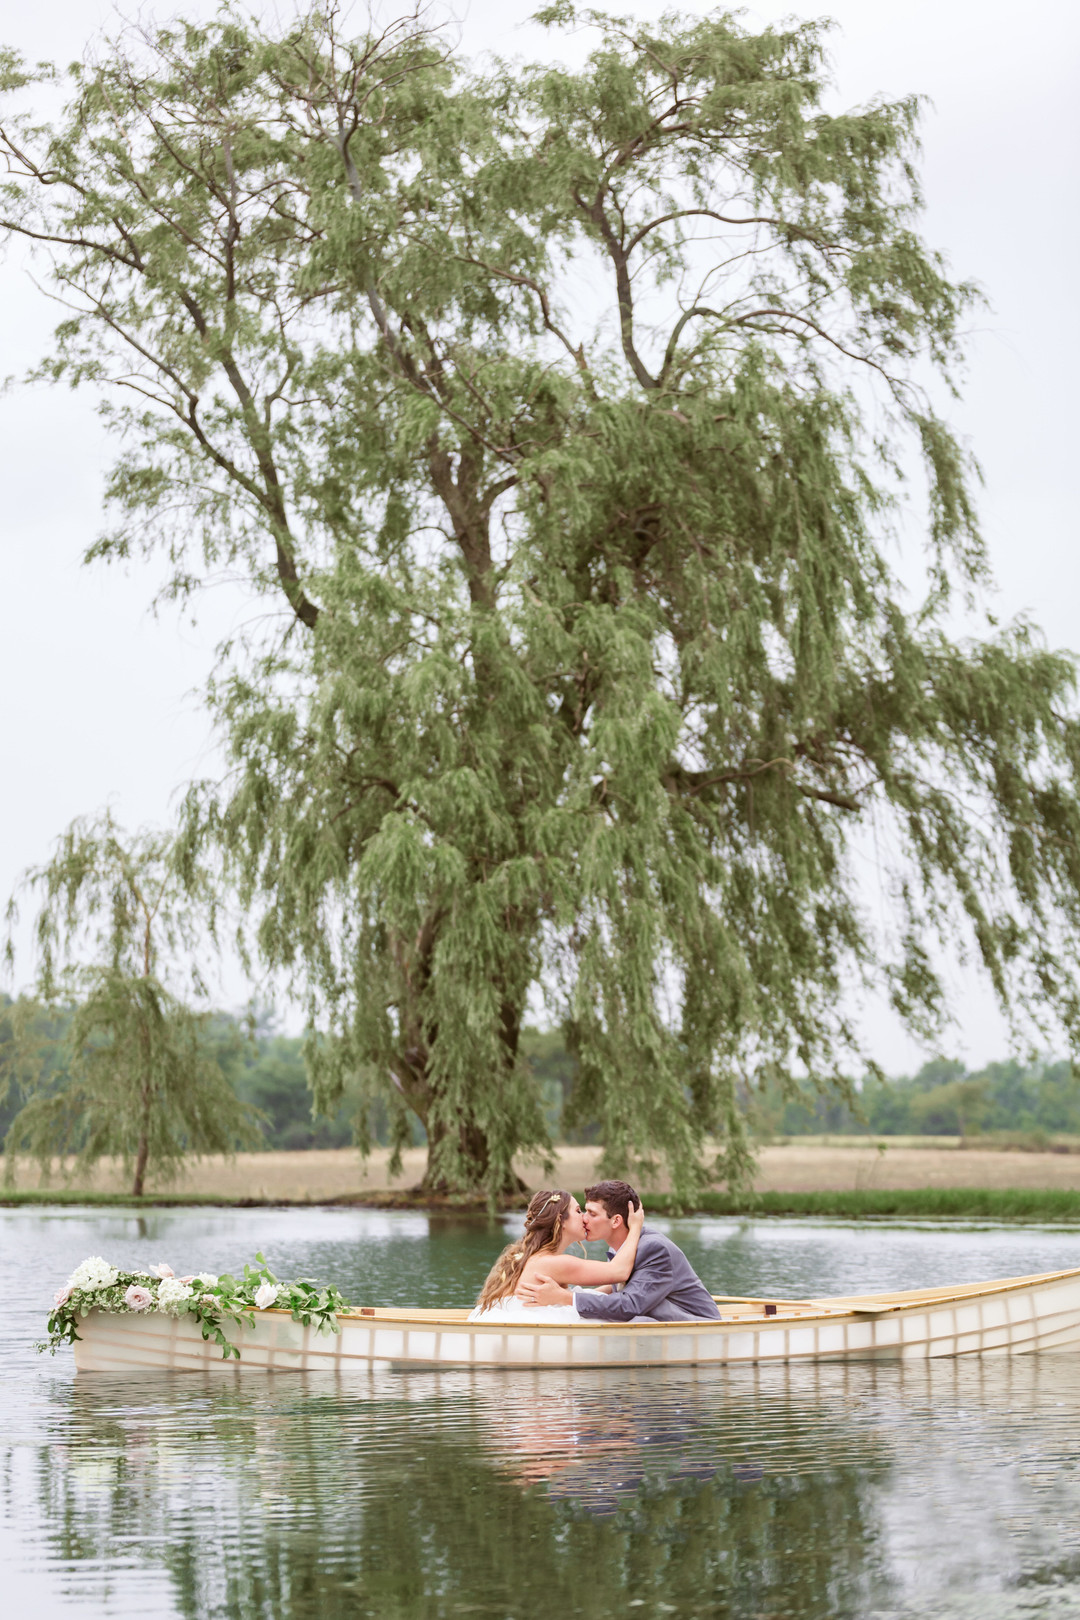 French Hen Farm, Blush Wedding, Ohio Wedding, bride and groom in canoe on lake